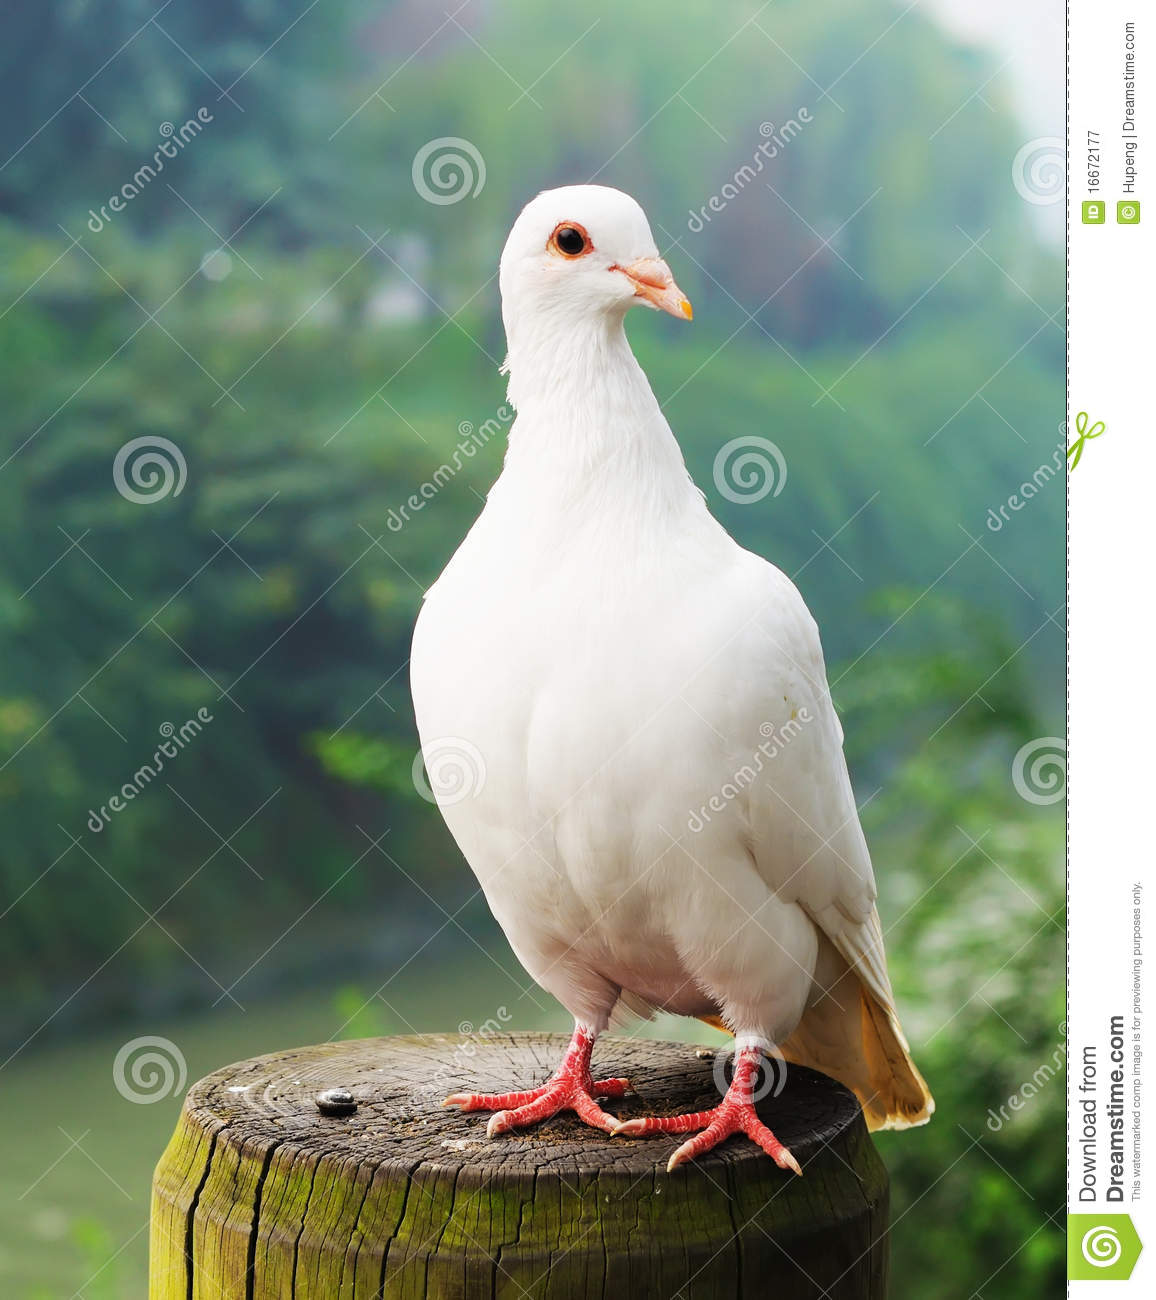 White Pigeon Royalty Free Stock Photography - Image: 16672177